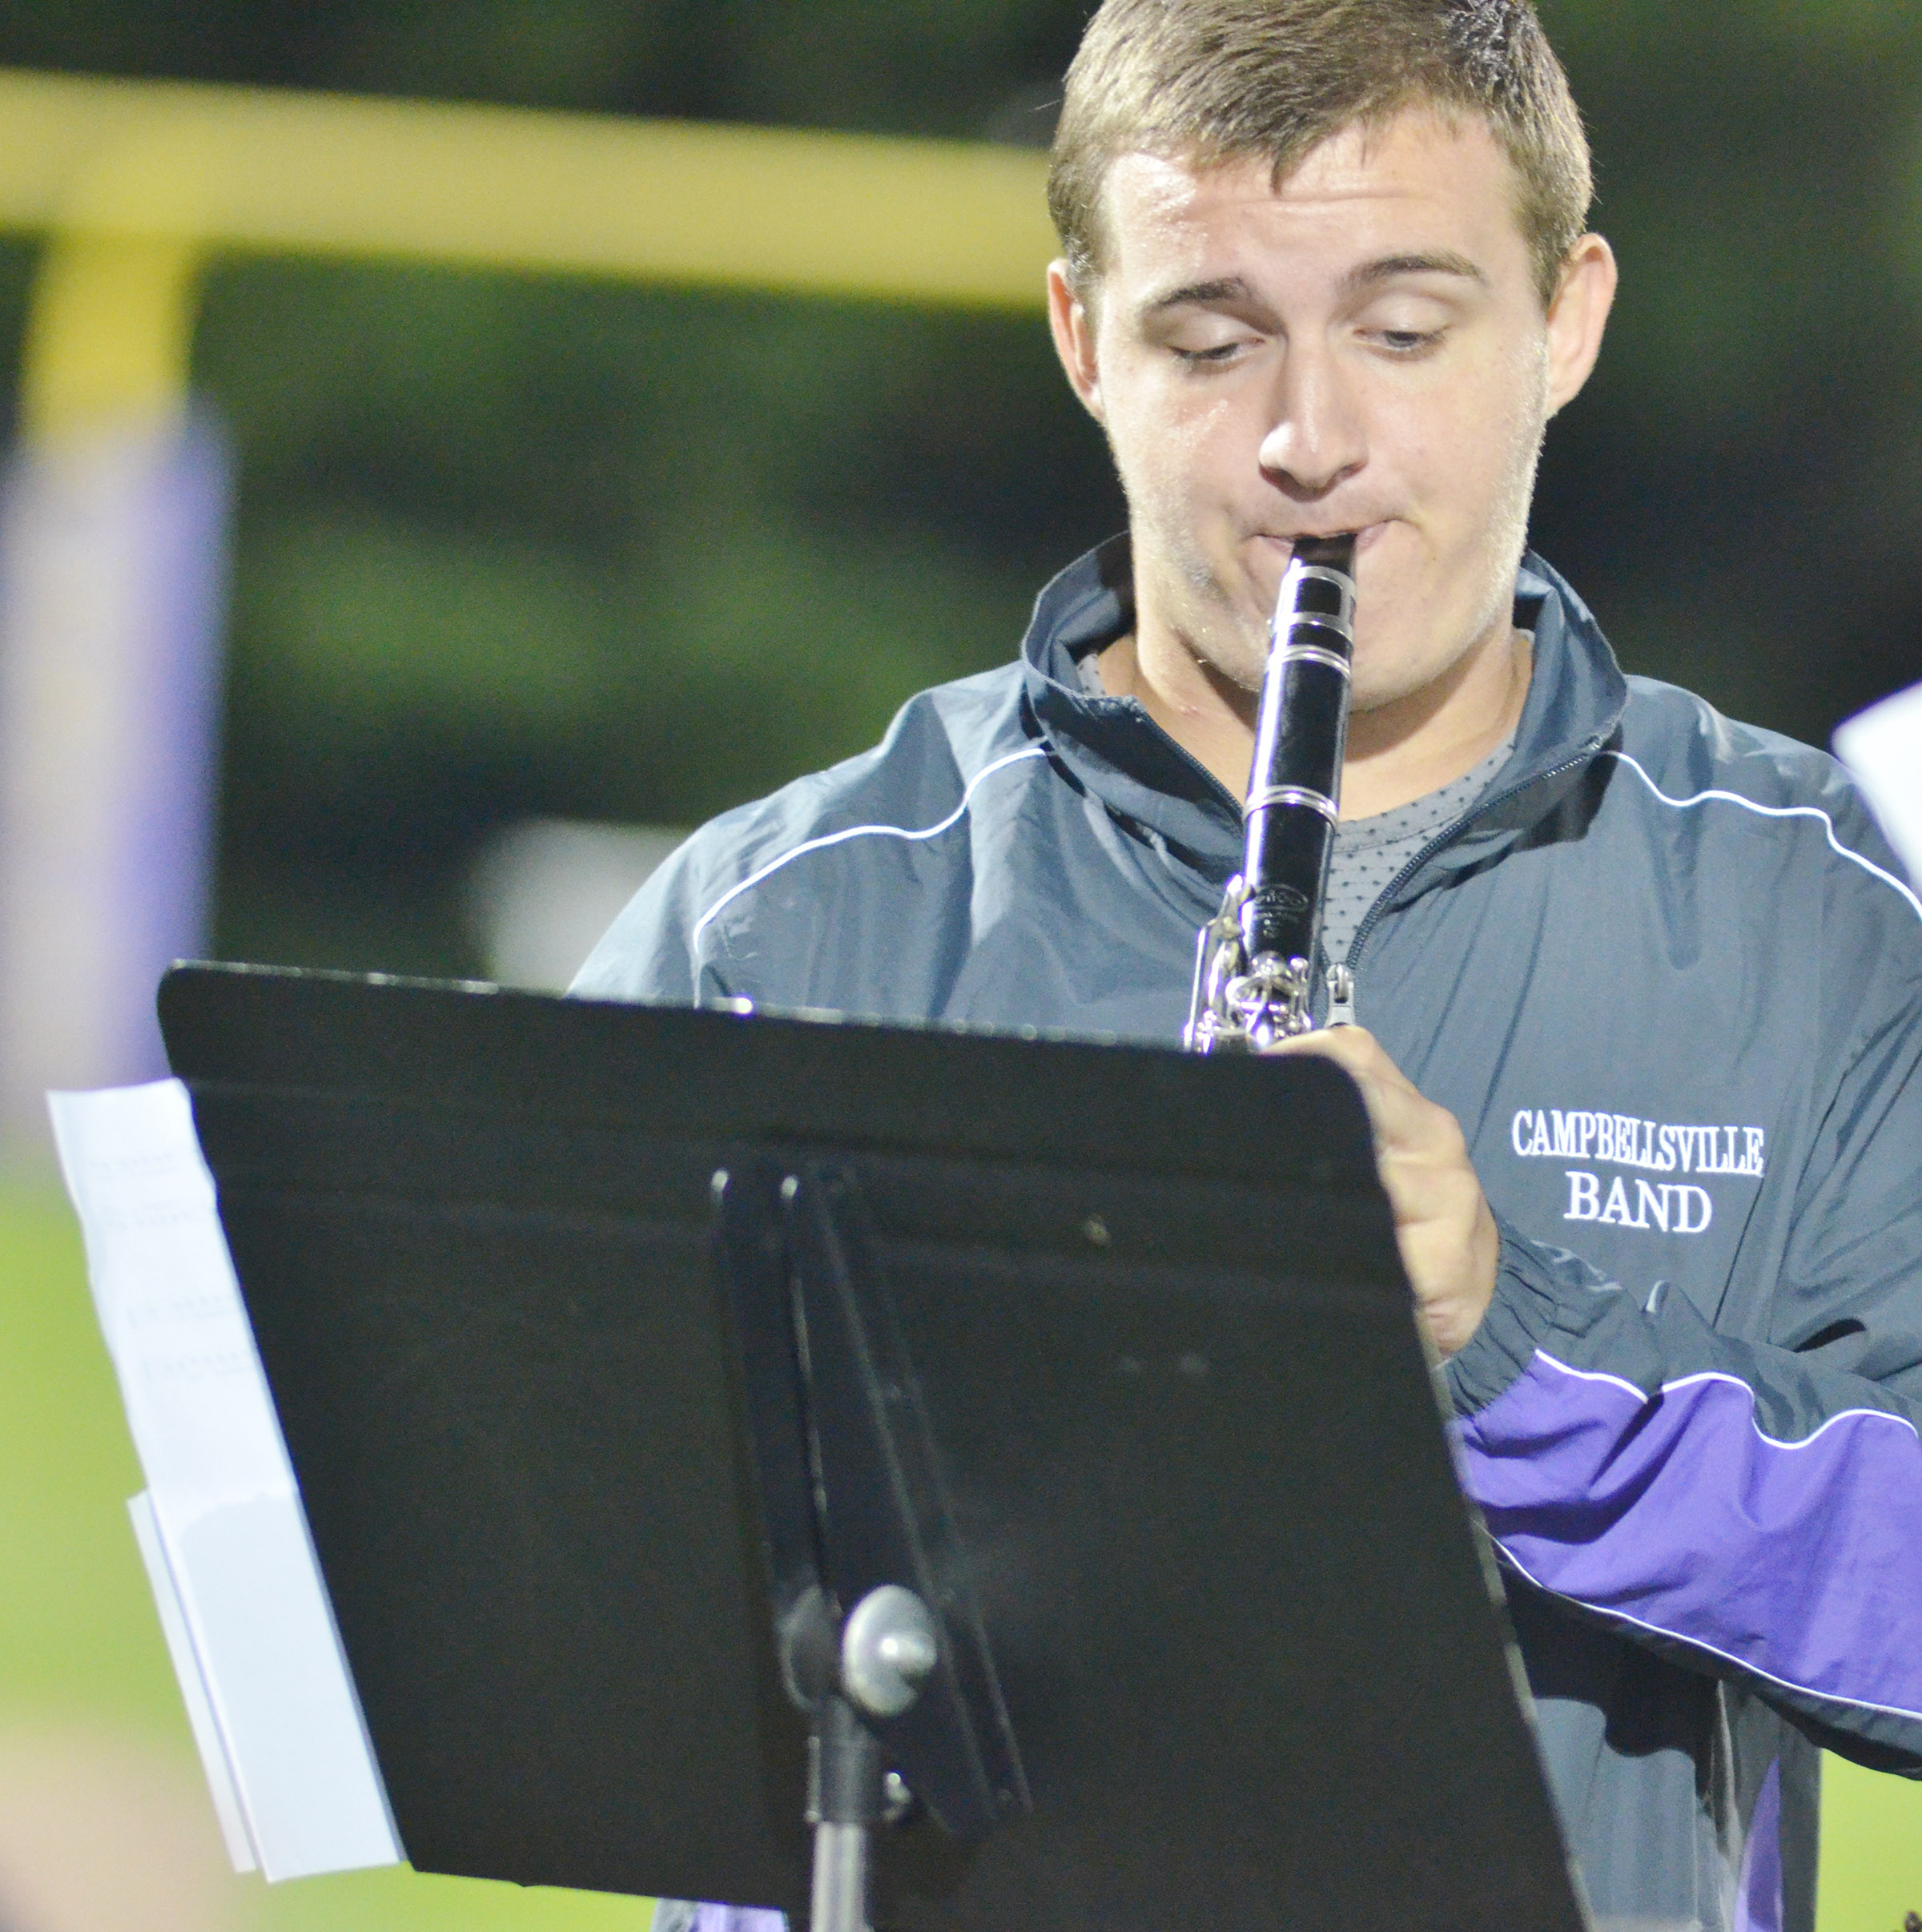 CHS senior Austin Fitzgerald plays with the CHS pep band.